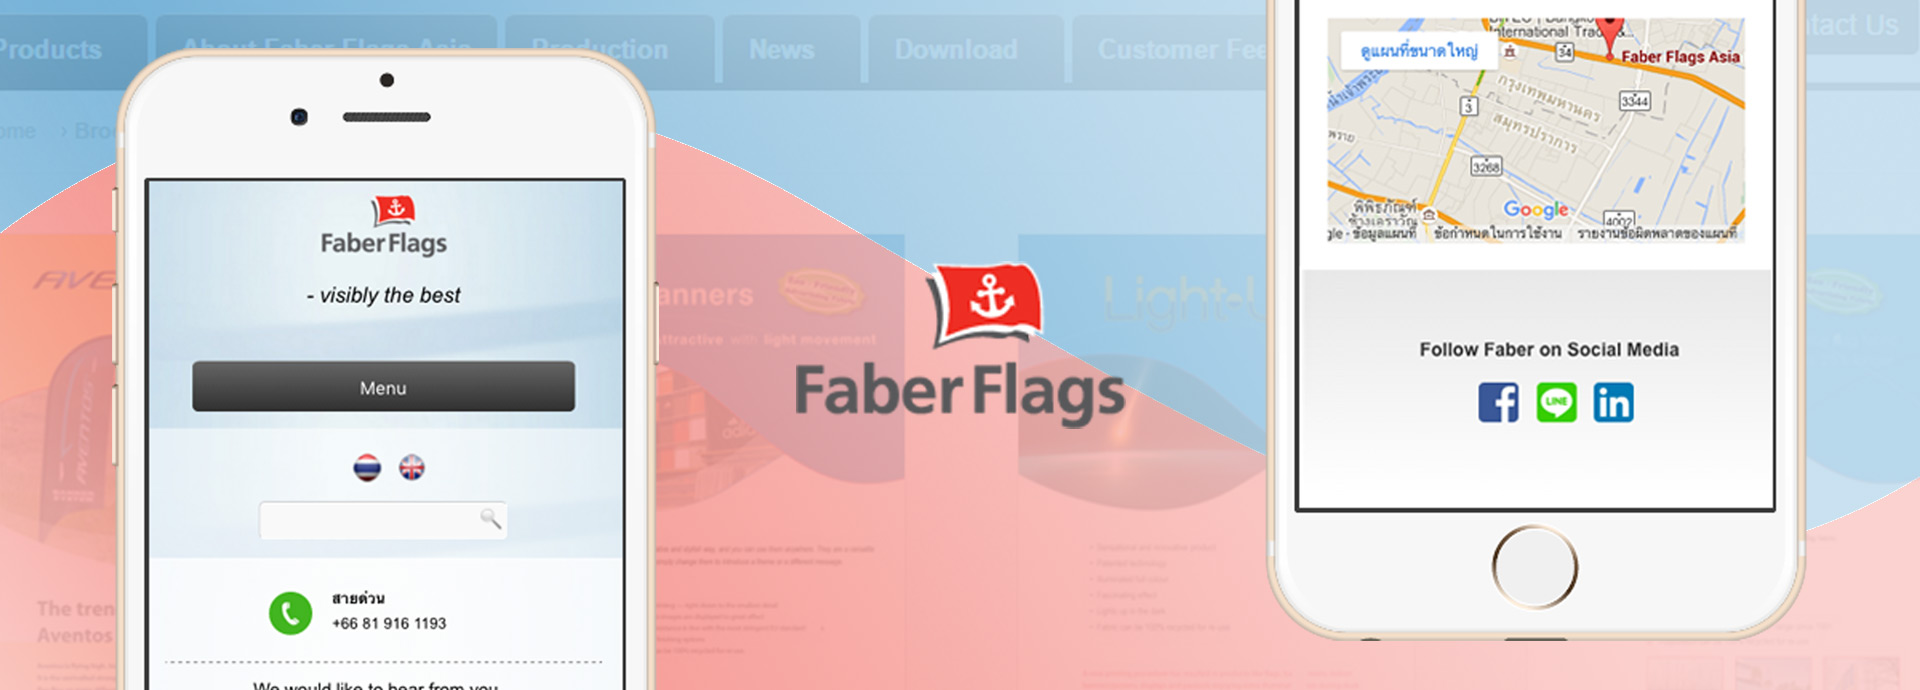 Clicksee Design Portfolio: Faber Flags